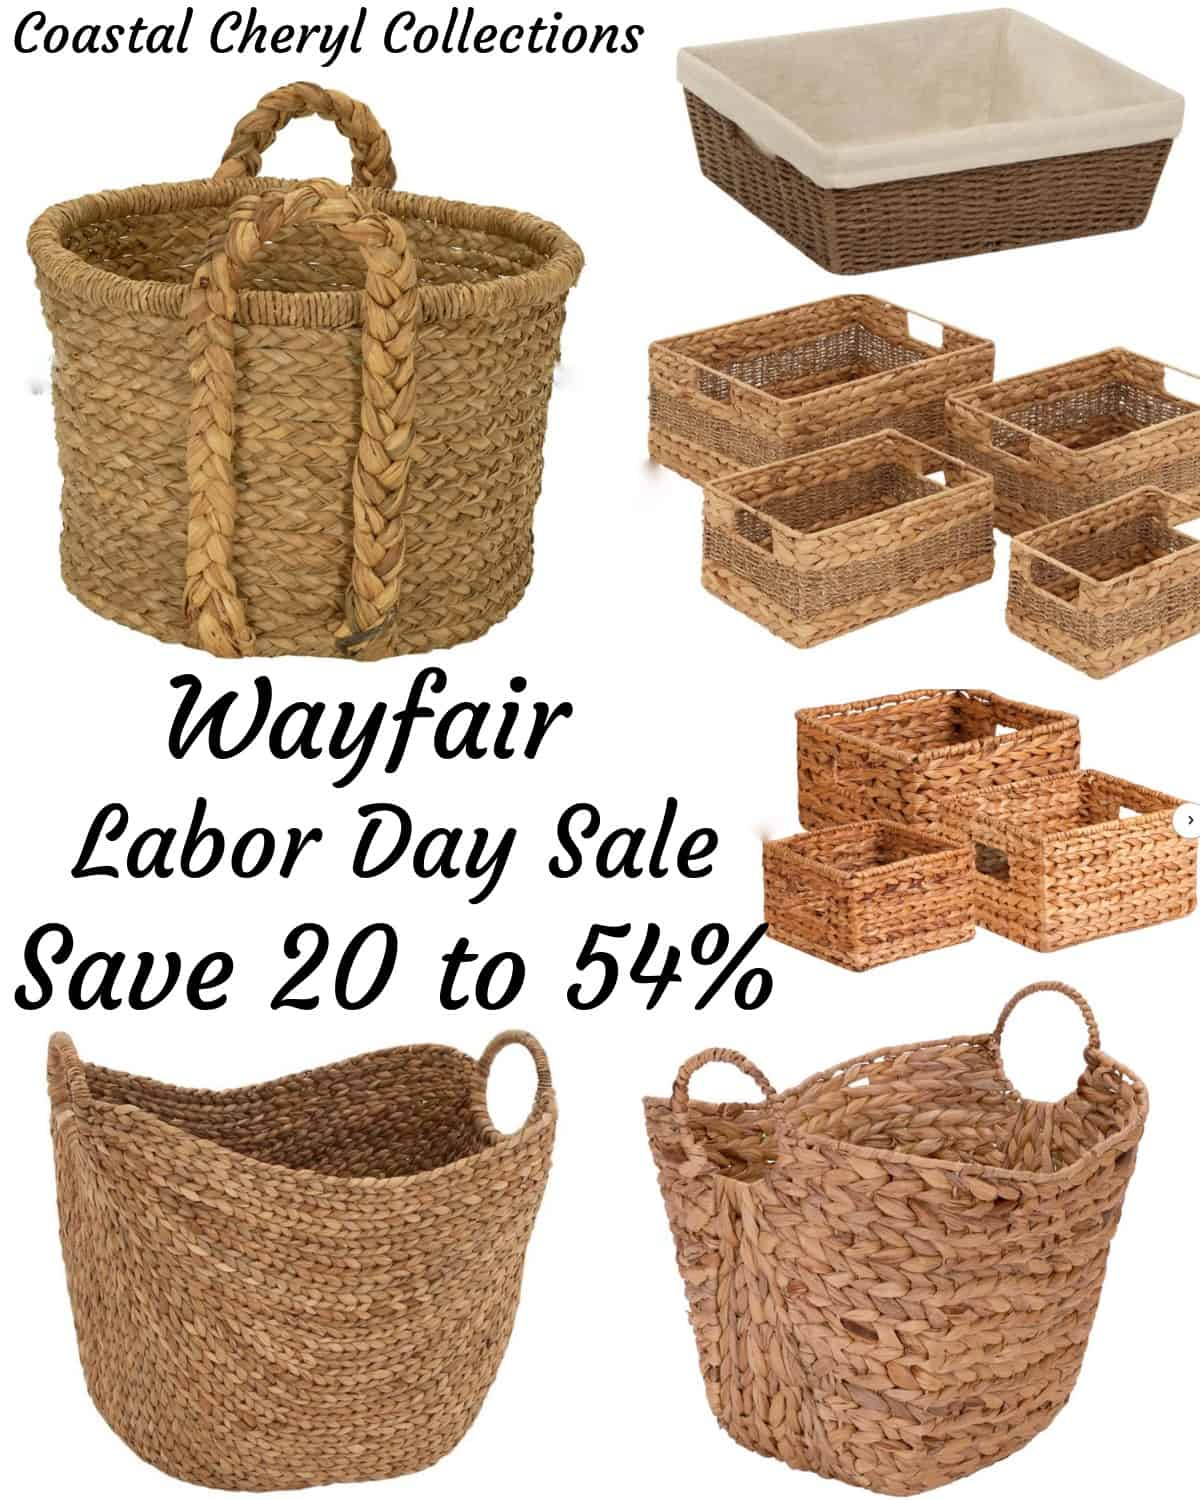 wayfair labor day sale 2019